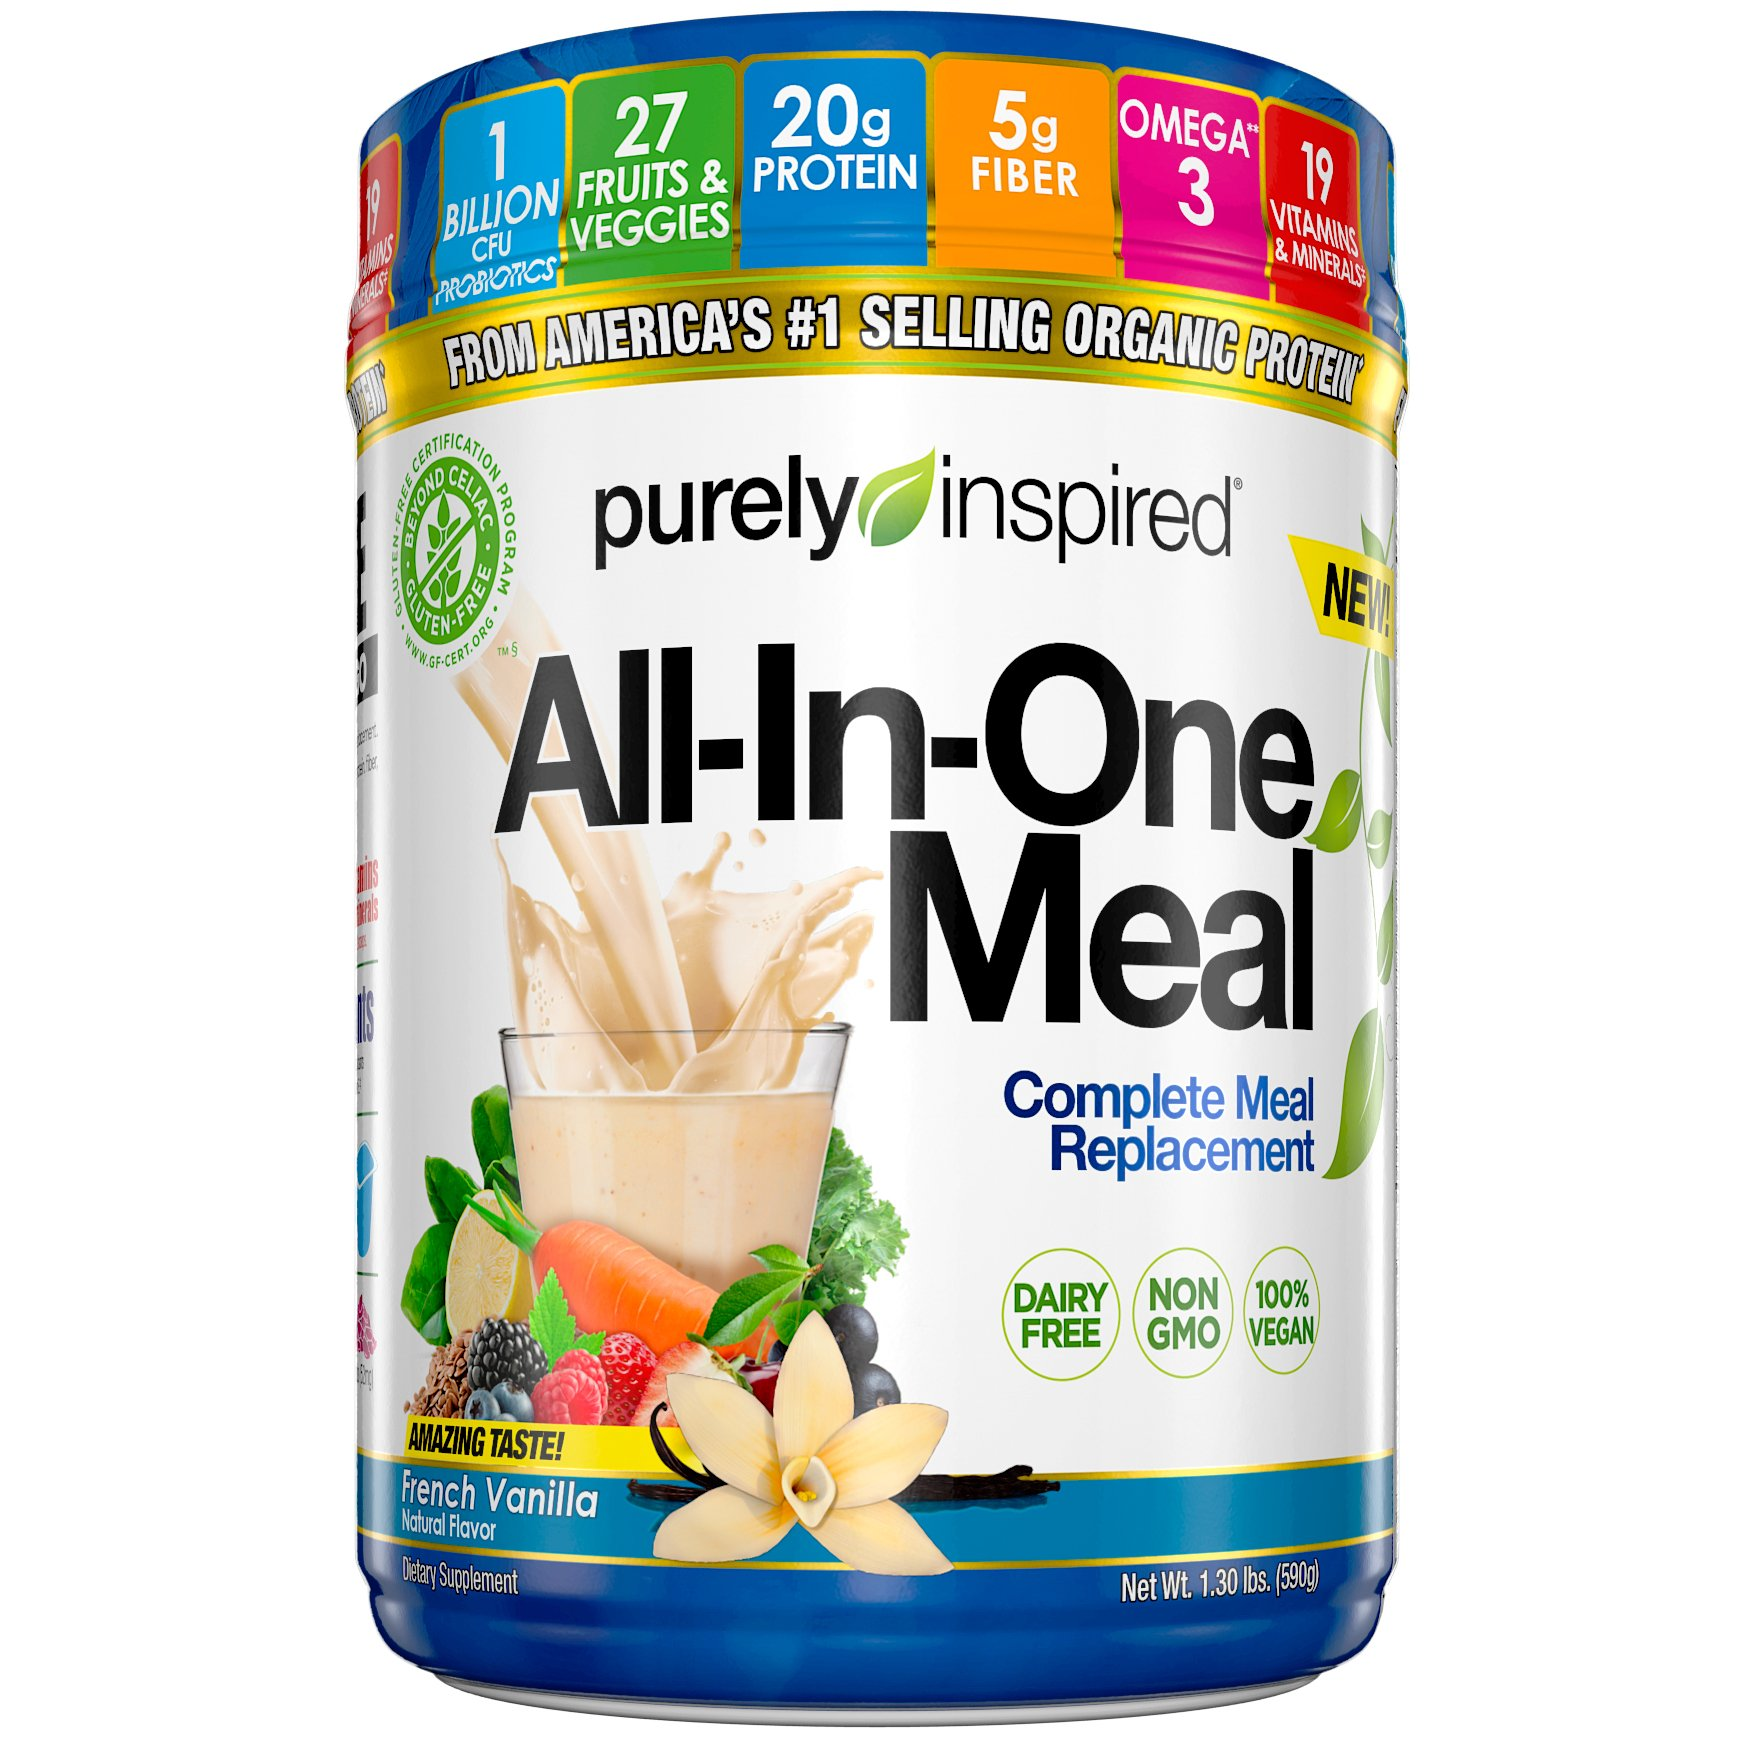 Purely Inspired All-in-One Meal Meal Replacement Shake Powder, Vegan, 20g Protein with Fiber, Vitamins, Minerals & Probiotics, French Vanilla, 15 Servings (1.3lbs) by Purely Inspired